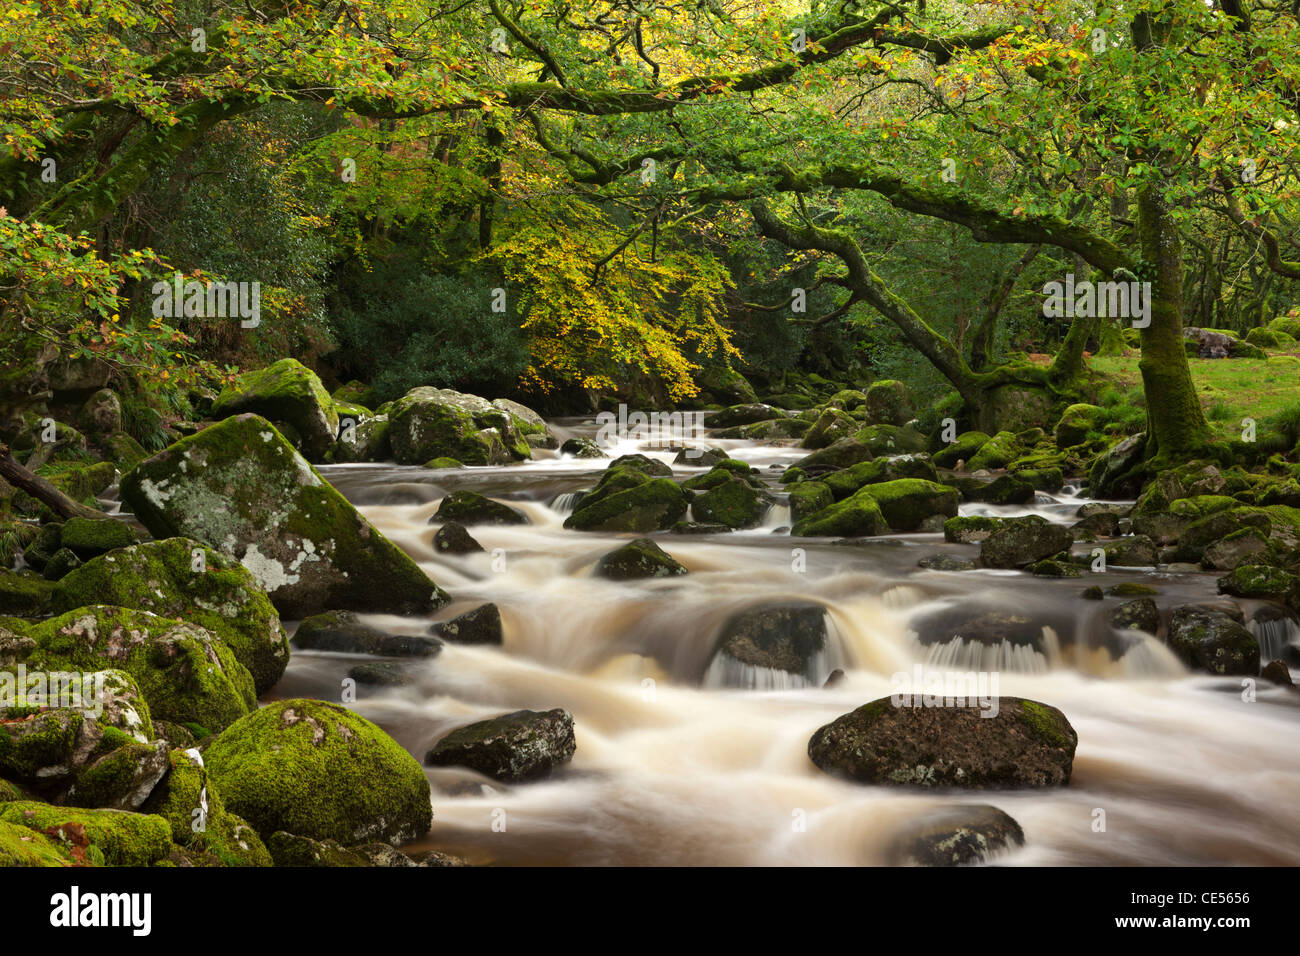 River Plym plunges past moss covered boulders on its course through Dewerstone Wood, Dartmoor, Devon, England. - Stock Image